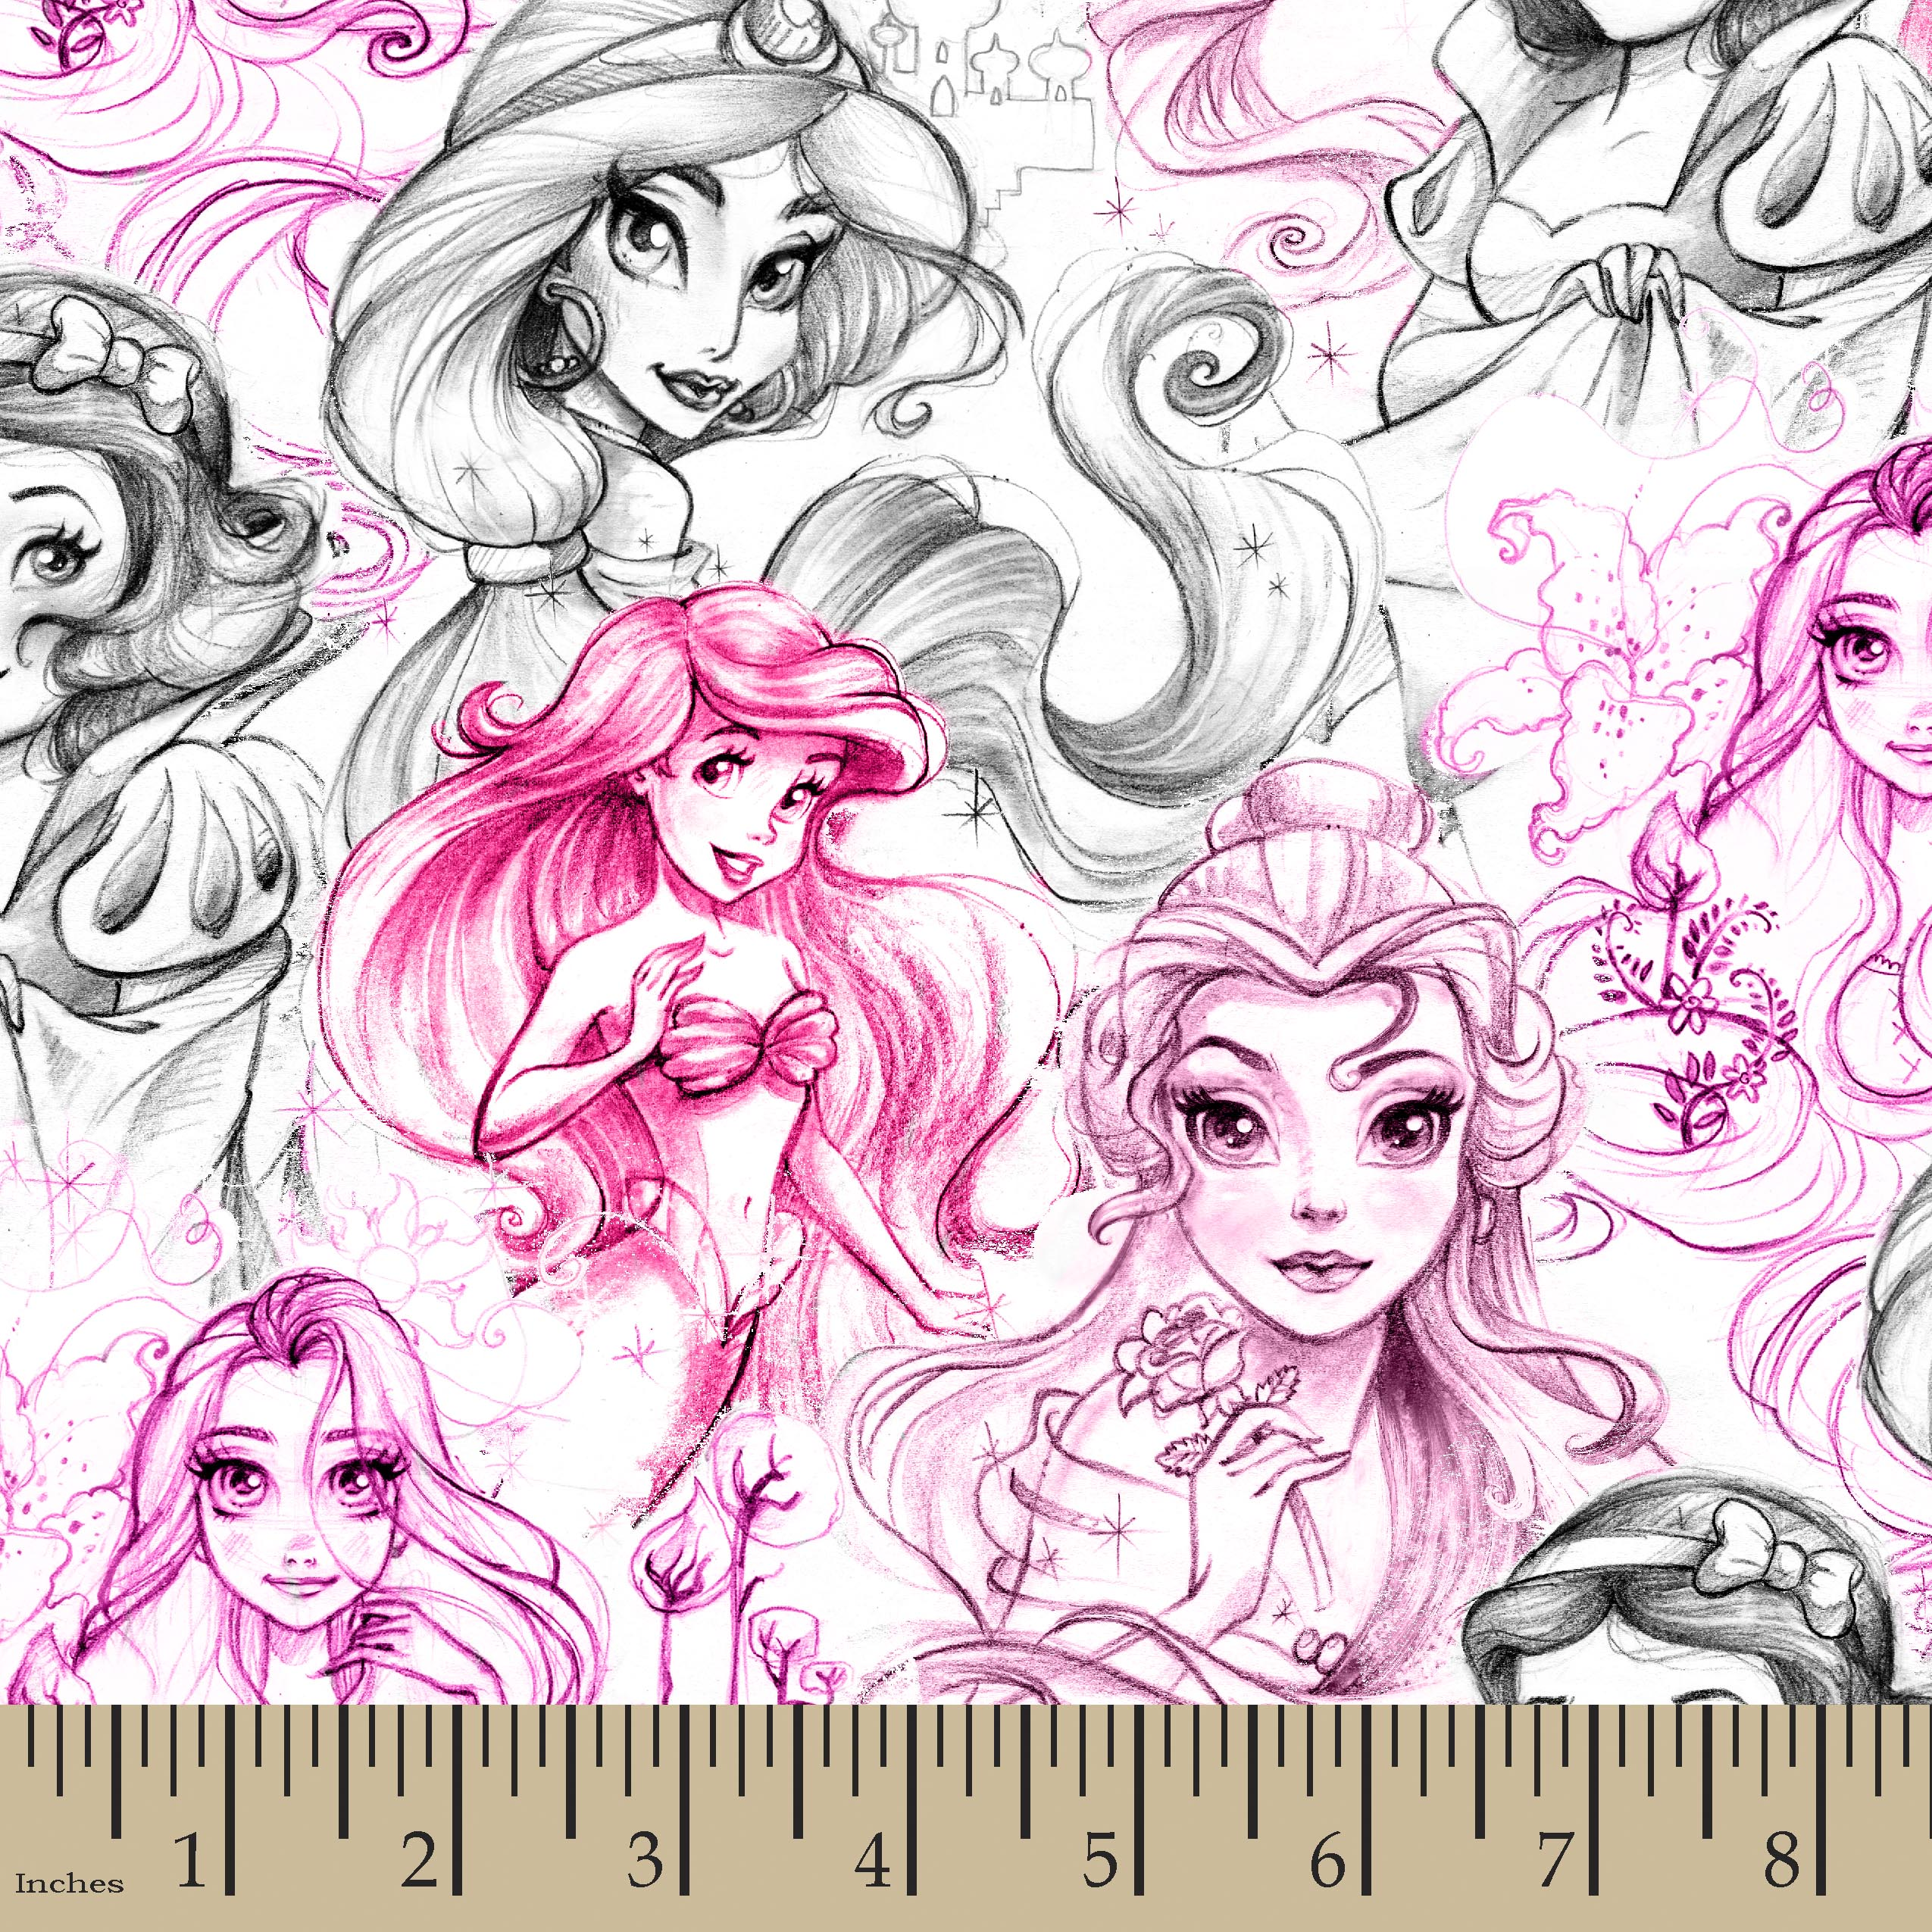 Disney Princess Enchanting Stories Sketch Cotton Fabric by the yard